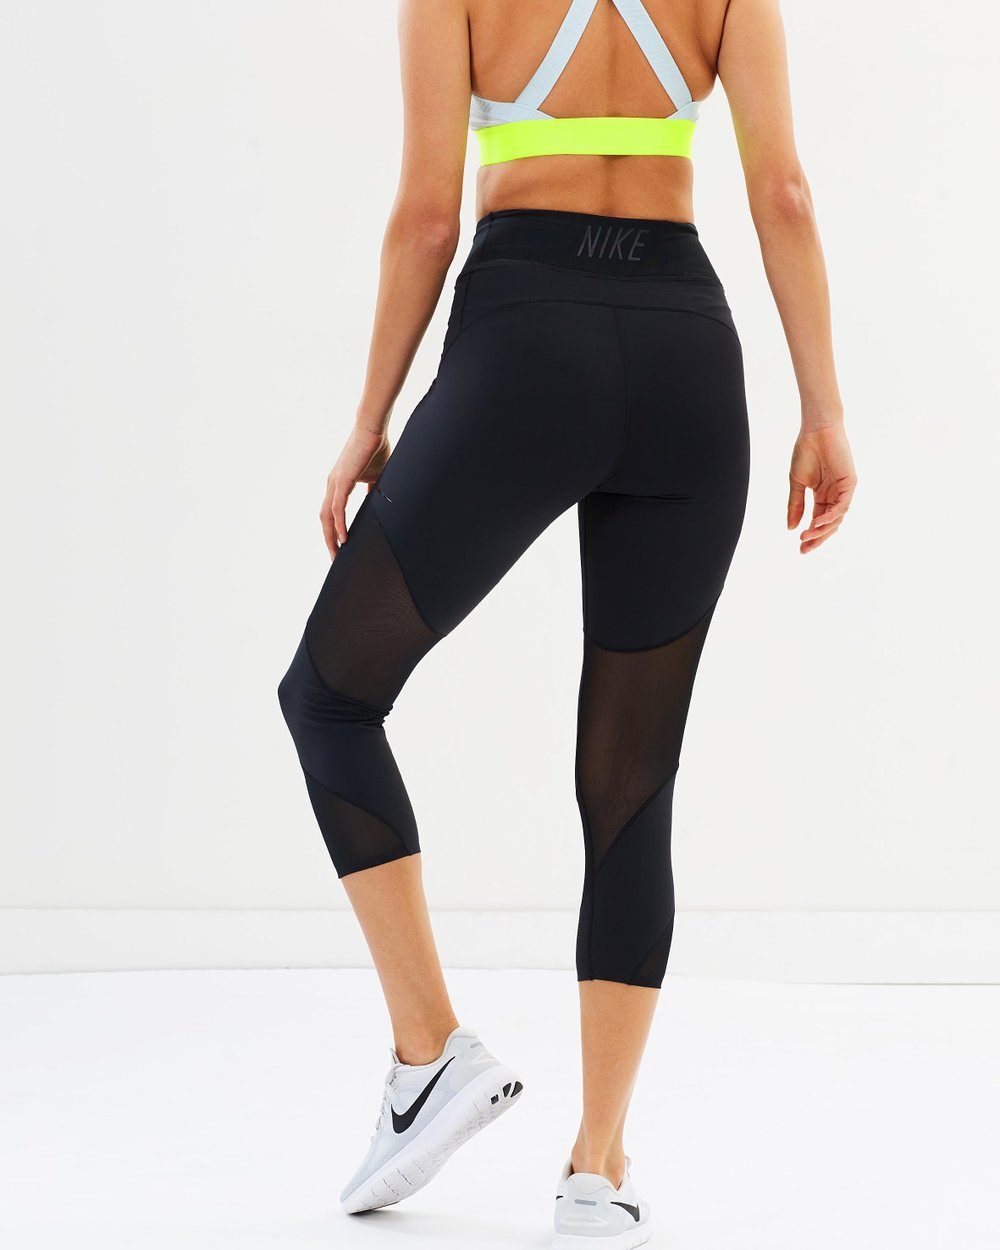 691c24e7f4707 Women's Nike Fly Lux Crop Tights by Nike Online | THE ICONIC | Australia